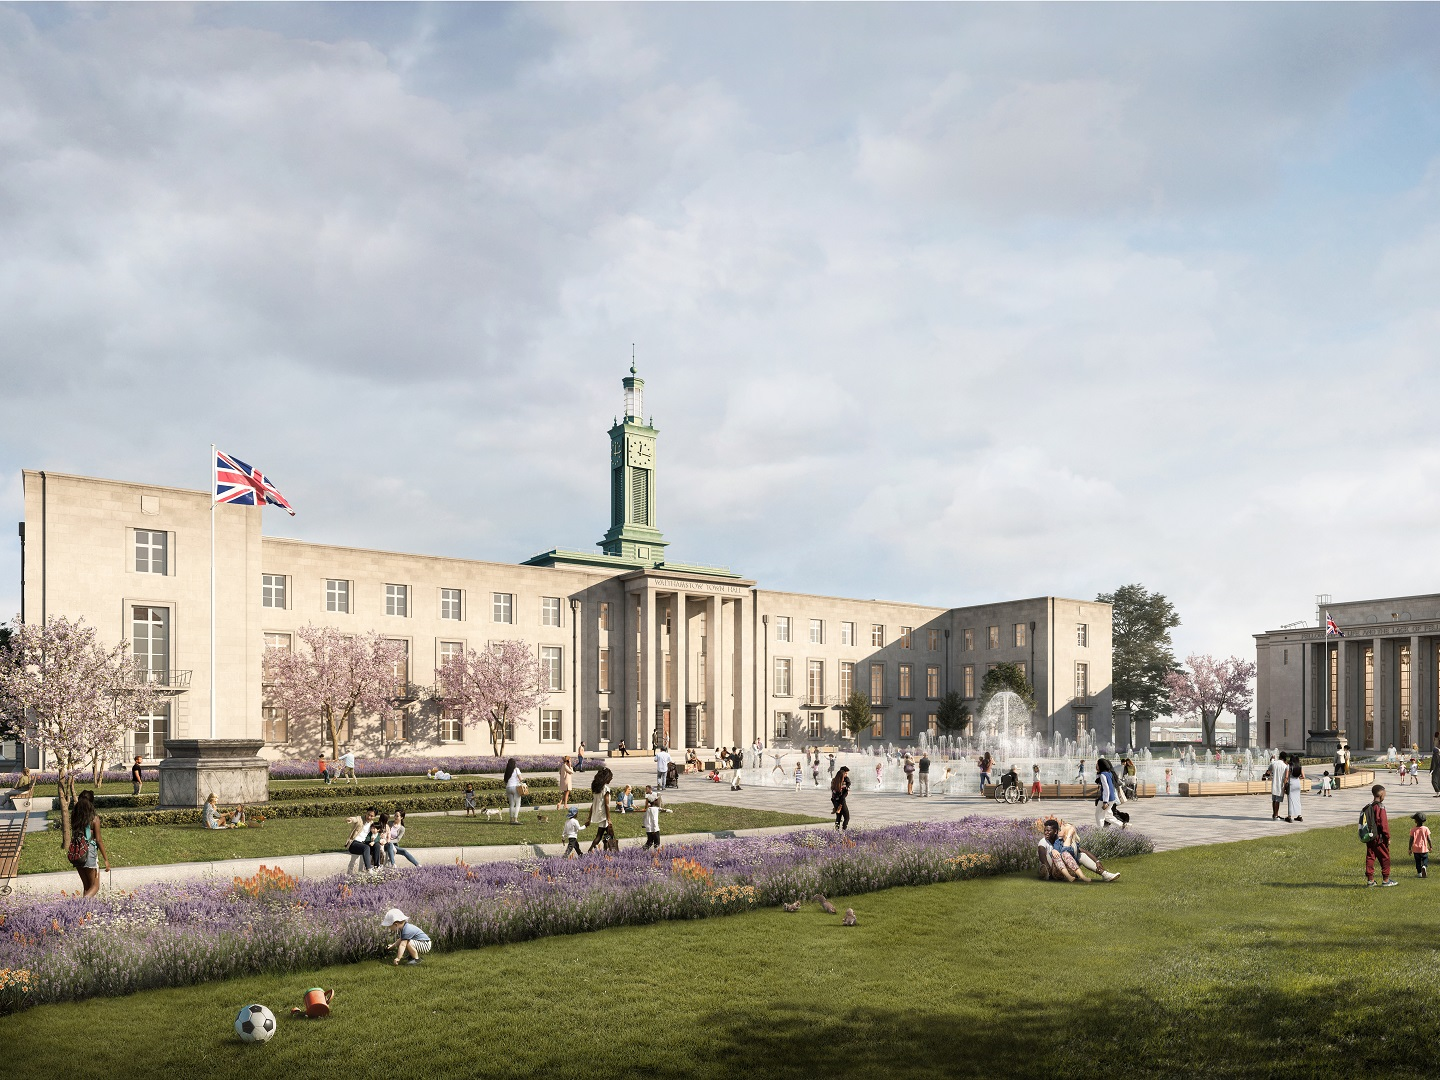 Waltham Forest pushes on with COVID recovery plan